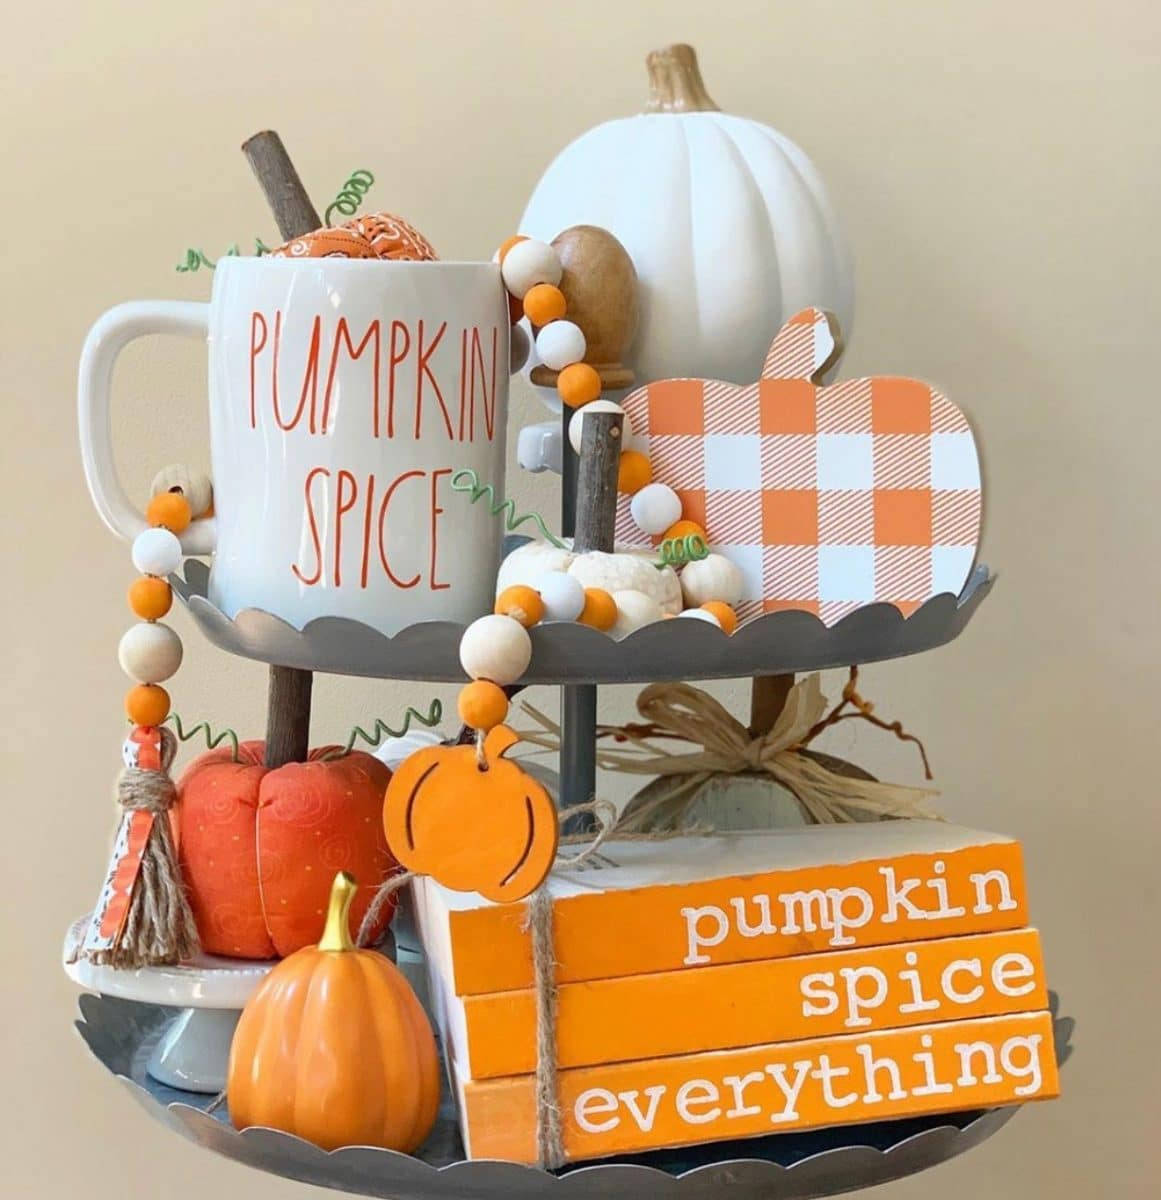 Halloween tiered tray ideas for home.  Orange and white plaid pumpkins, pumpkin spice mug, orange and white wooden beads, pumpkin spice everything wooden books, and two tiered tray